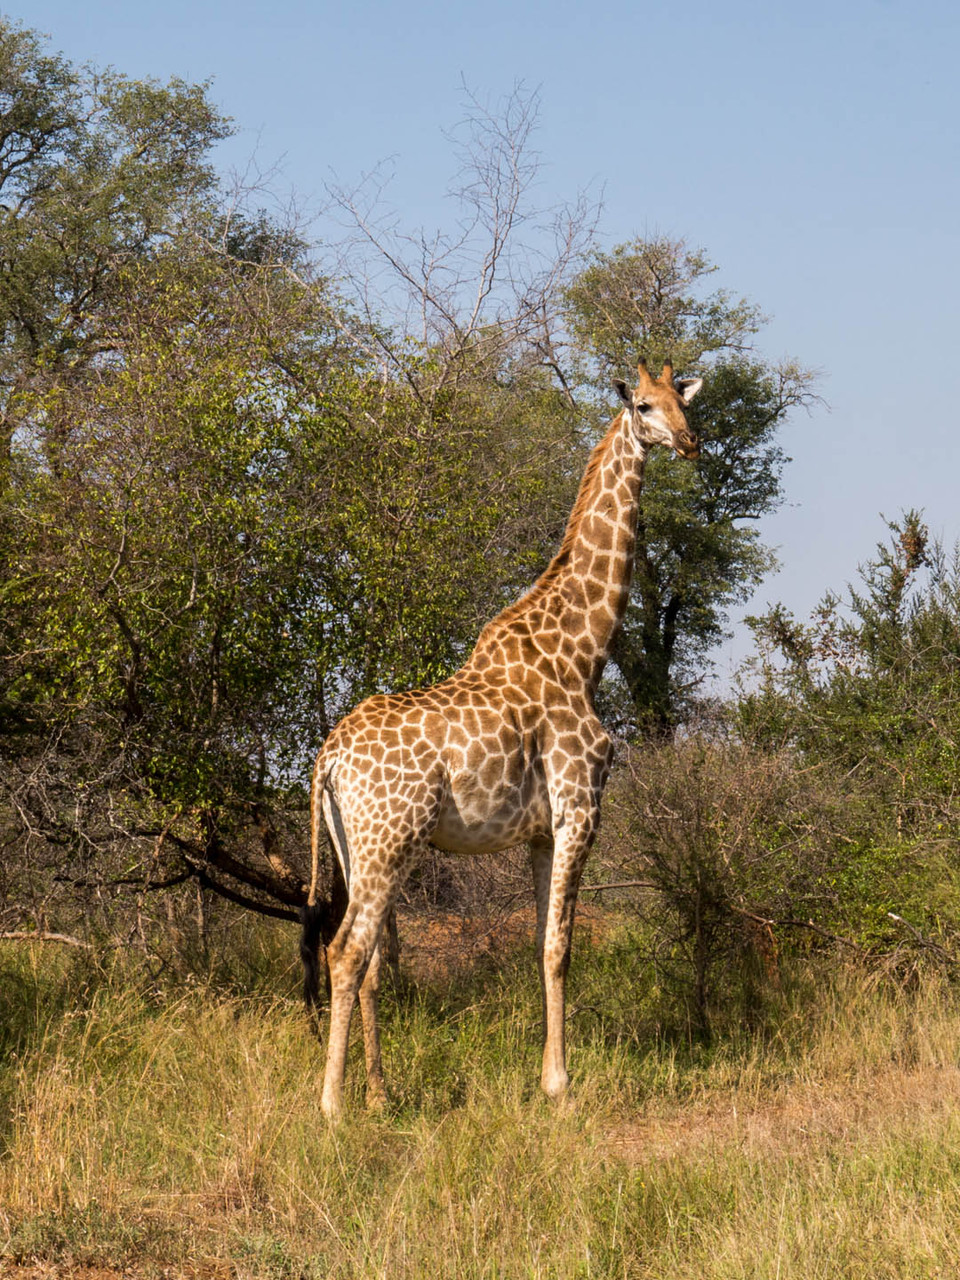 Giraffe [Kruger Park, South Africa, 2015]